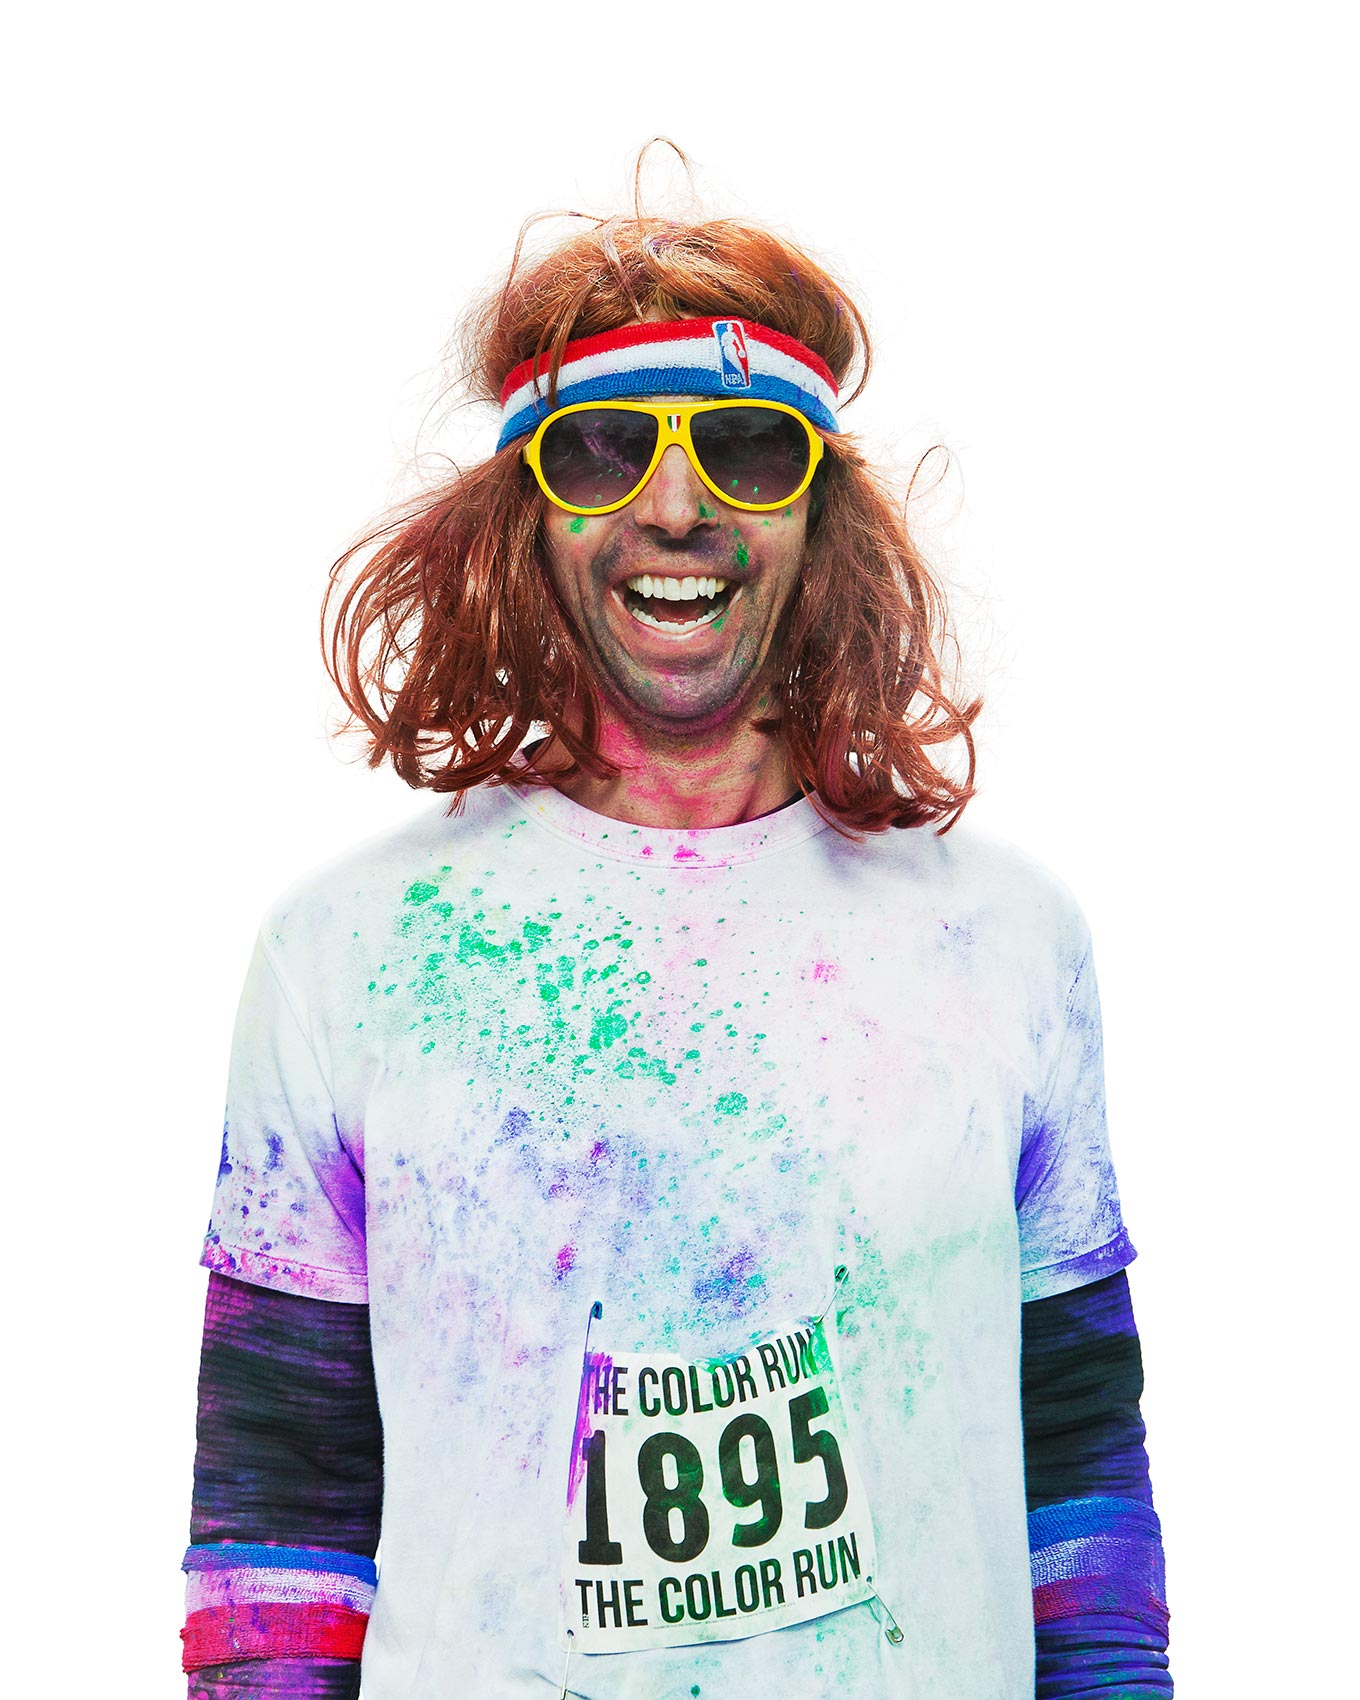 rford-color-run-dallas-392